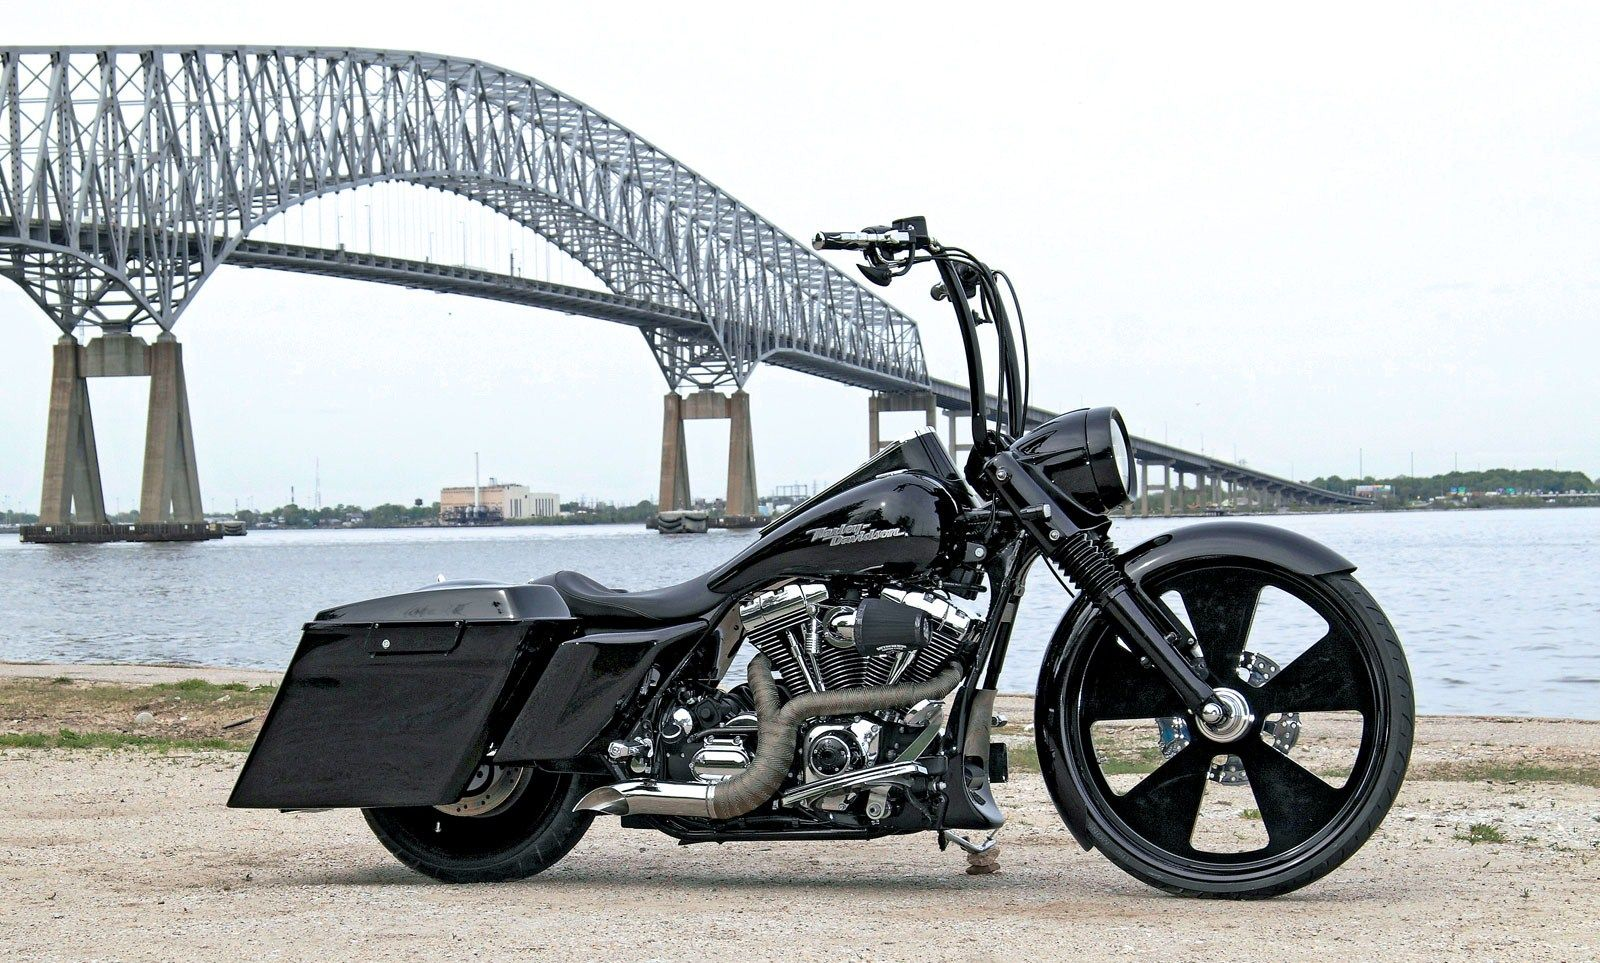 Bagger wallpaper wallpaperlost bagger wallpapers hd wallpapers bagger wallpaper wallpaperlost bagger wallpapers voltagebd Choice Image